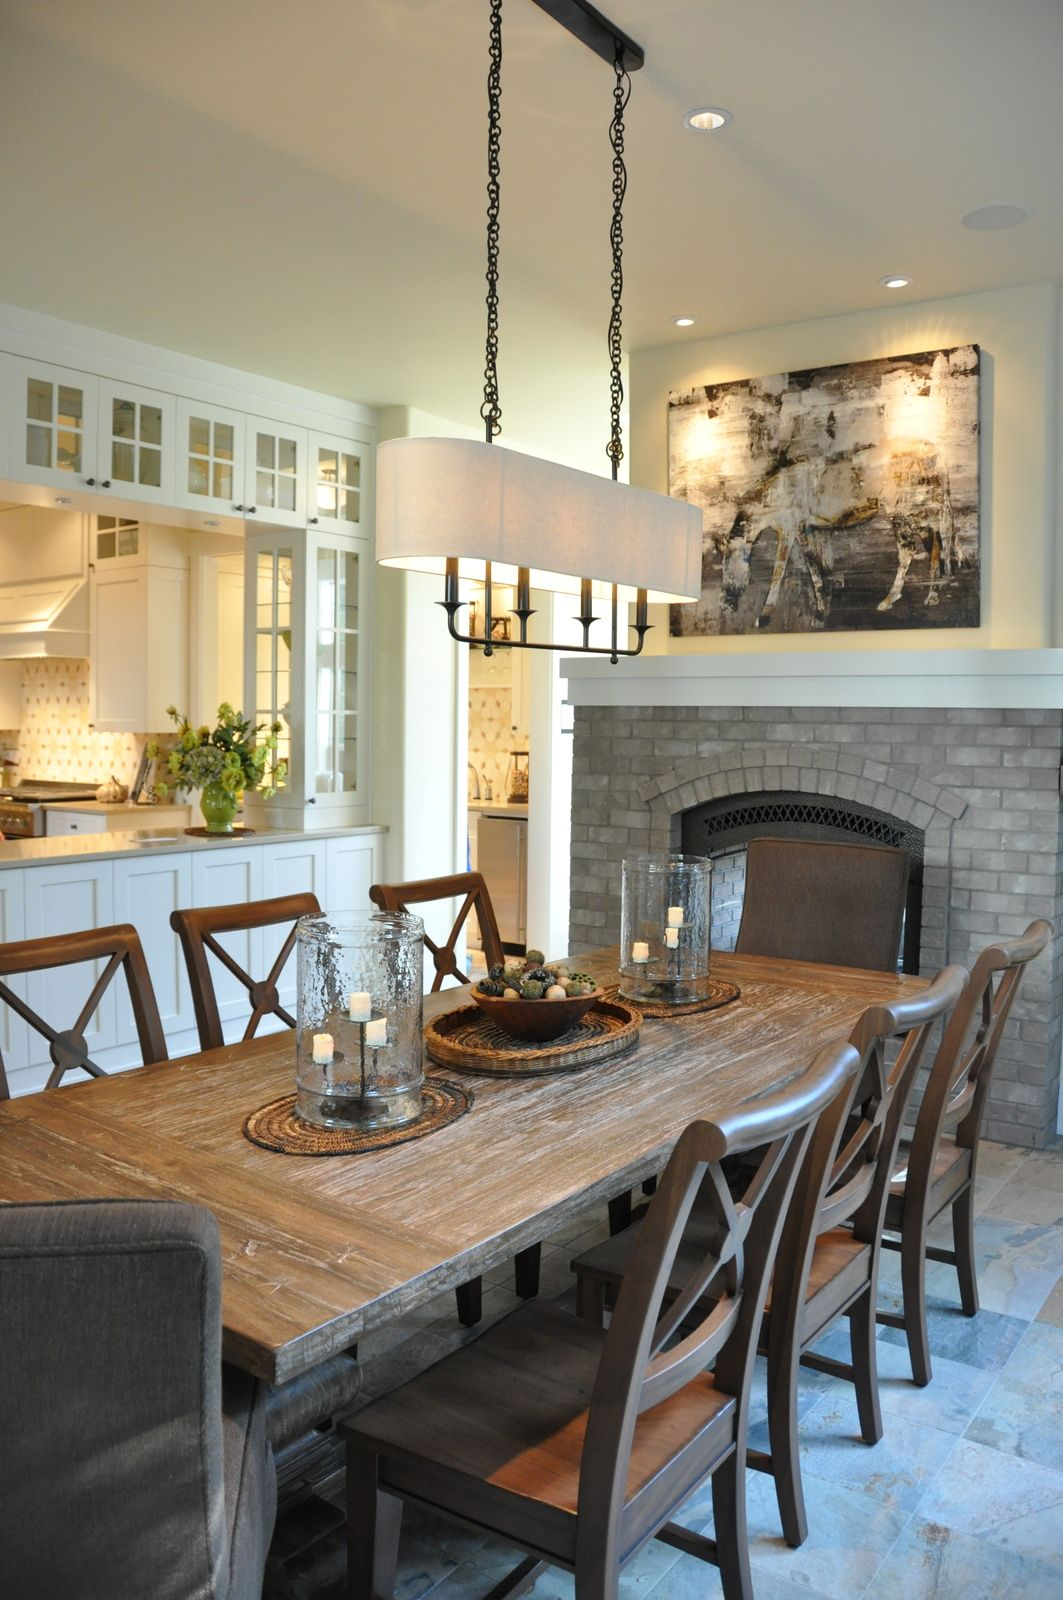 Kitchen Dining Interior Design: Budget Aside- Kitchen Counter Open To Dining With